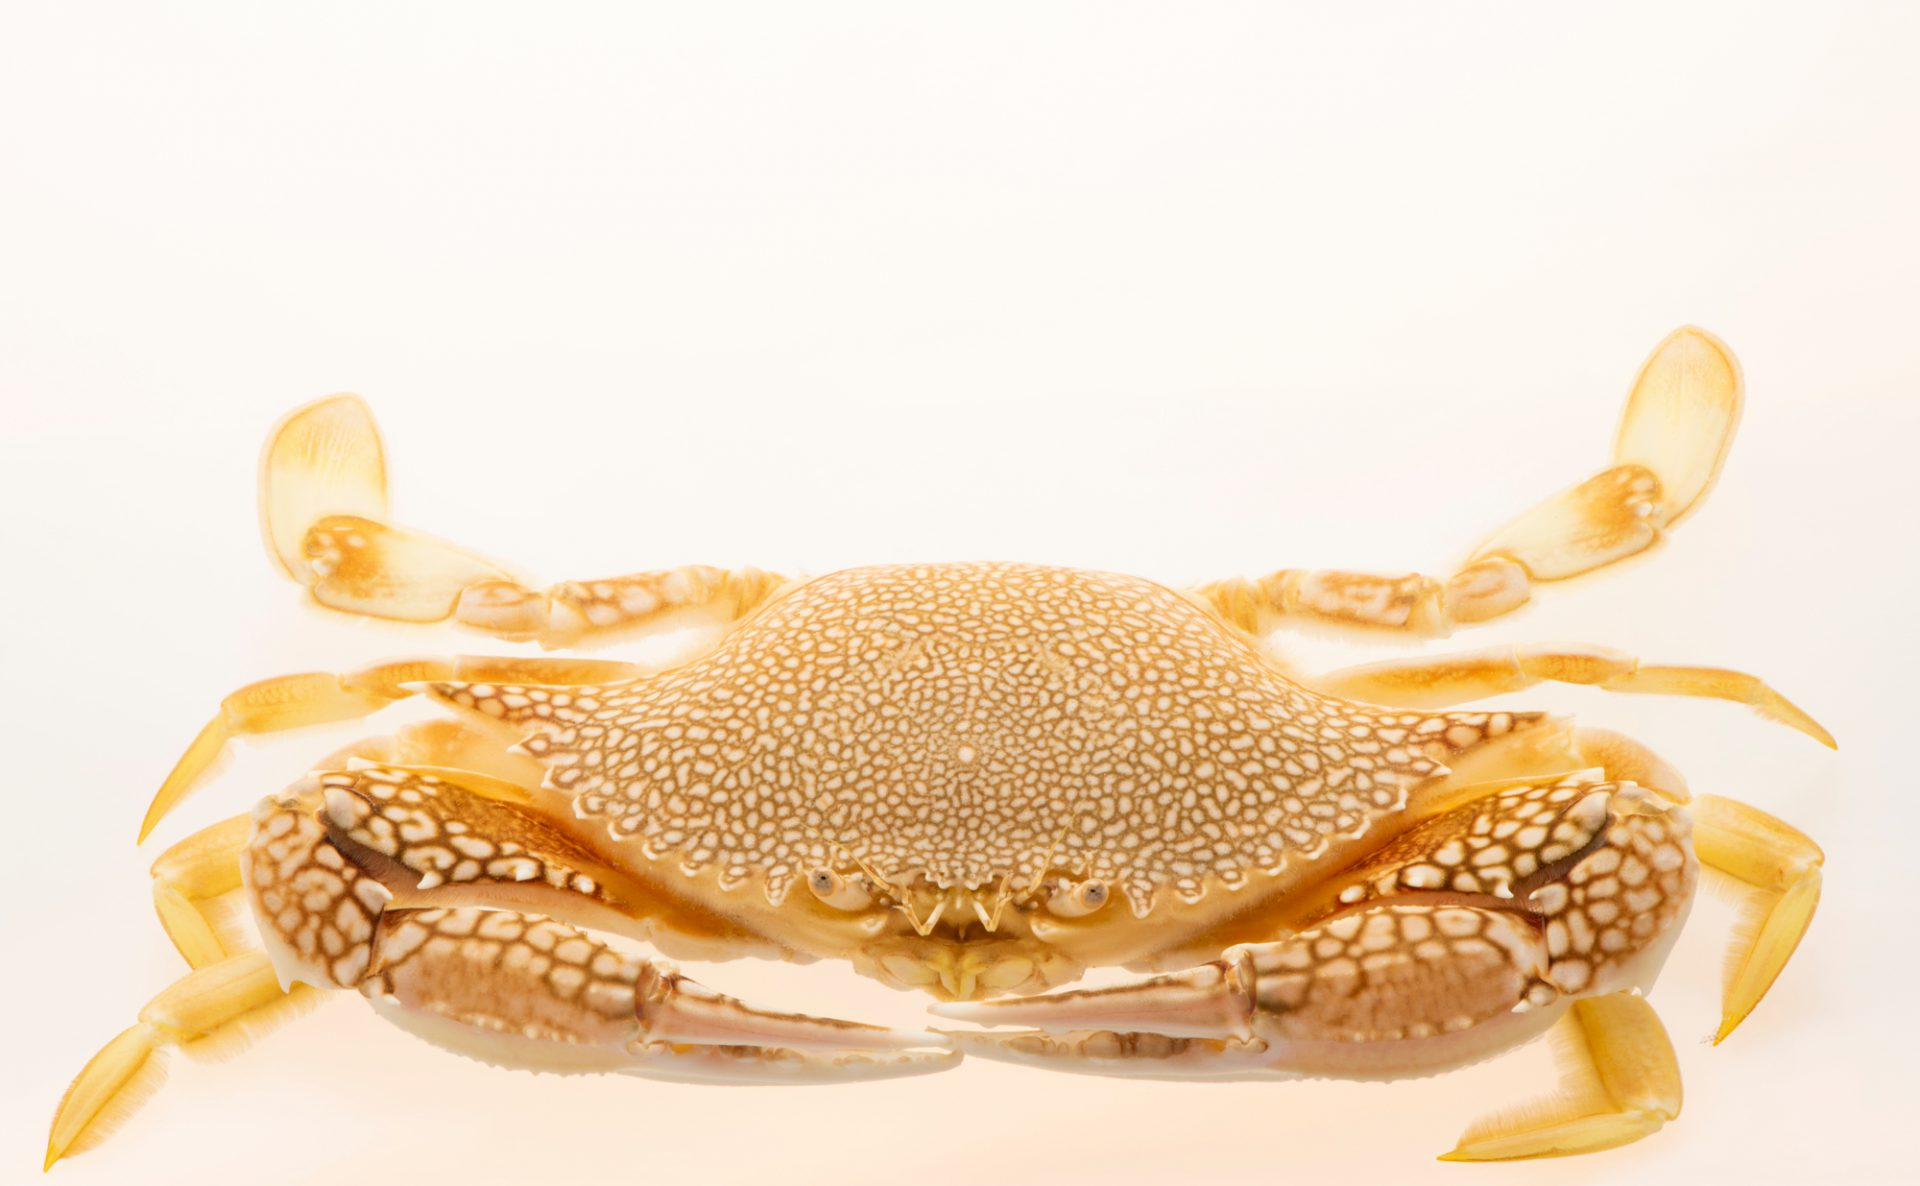 Photo: Lady crab (Arenaeus cribrarius) at Gulf Specimen Marine Lab.